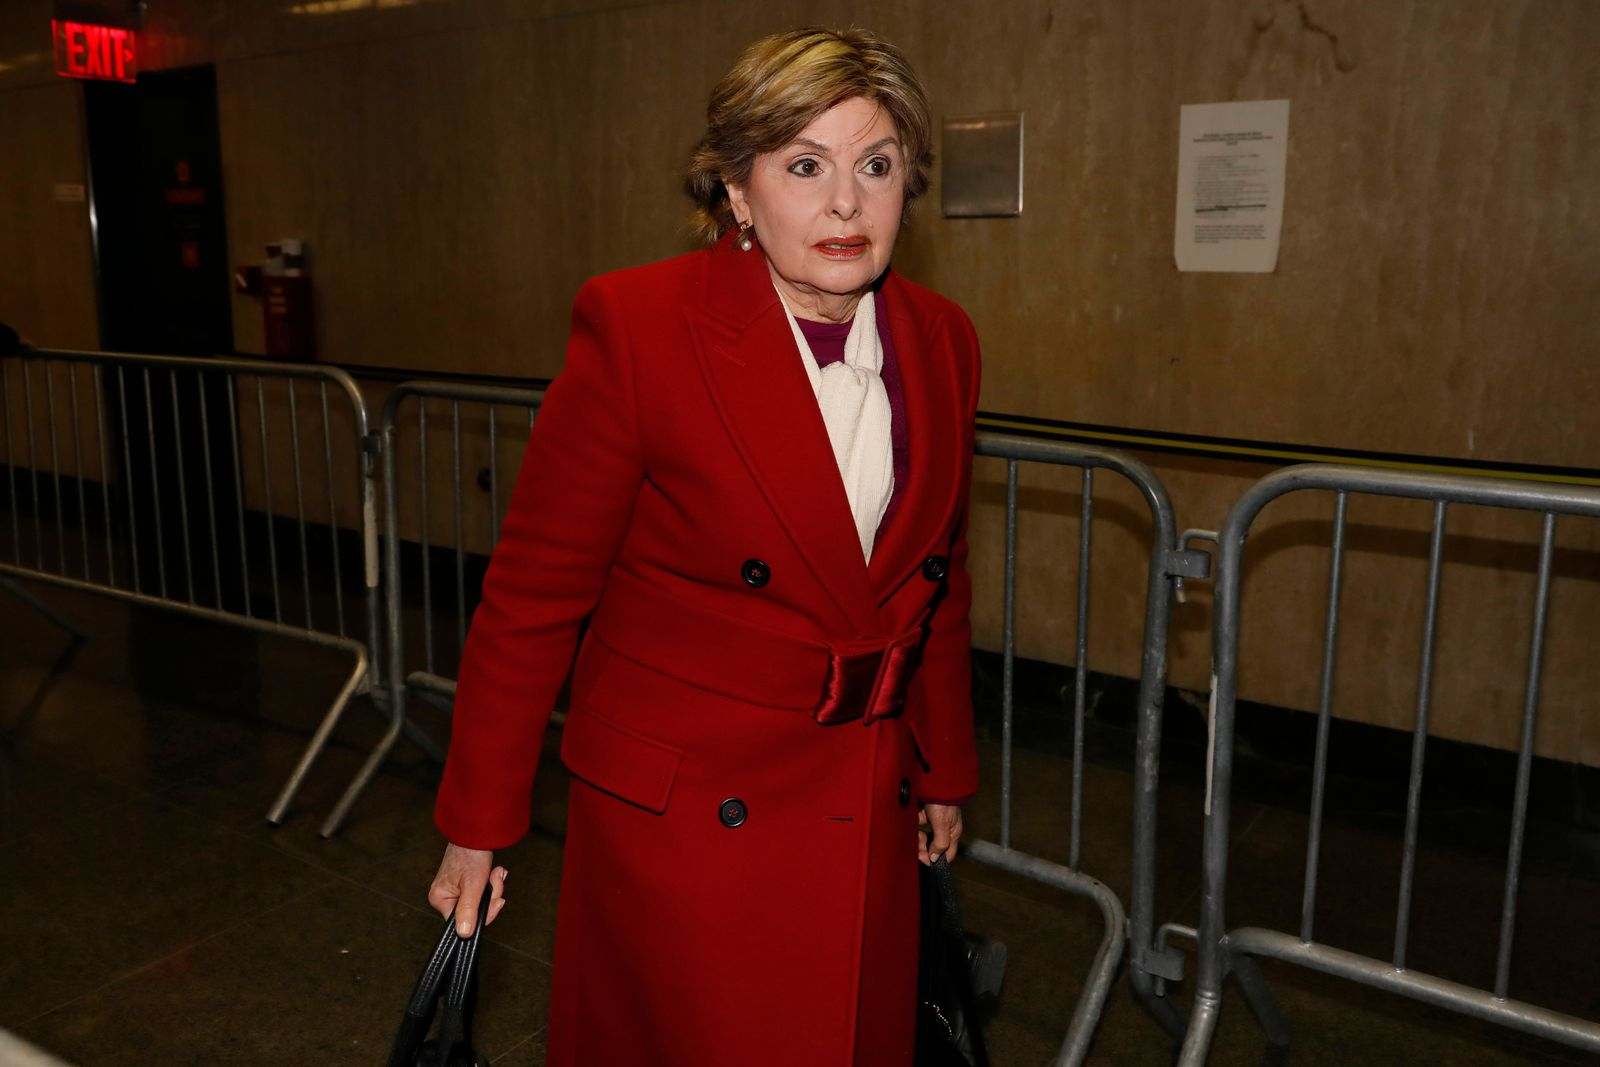 Attorney Gloria Allred arrives for the Harvey Weinstein rape trial, in New York, Friday, Jan. 24, 2020. (AP Photo/Richard Drew)